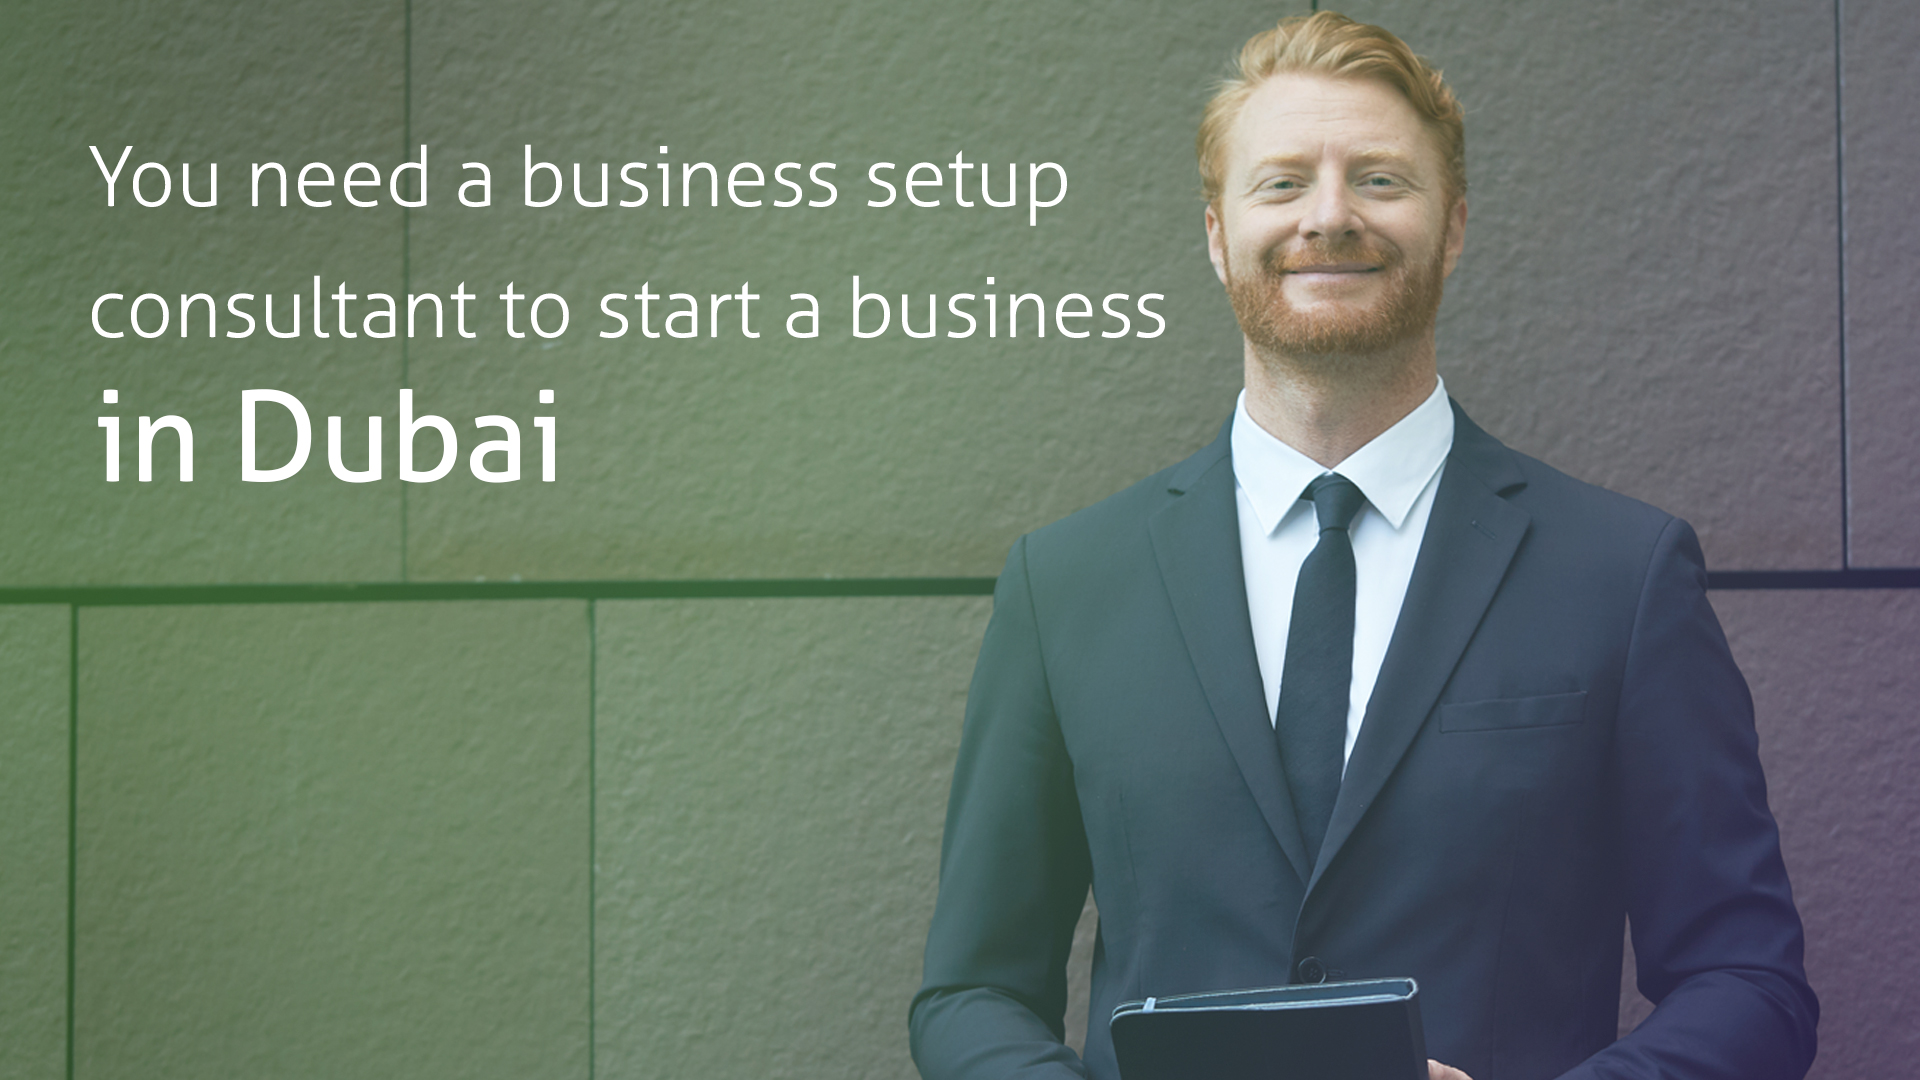 You need business setup consultancy to start your business in Dubai